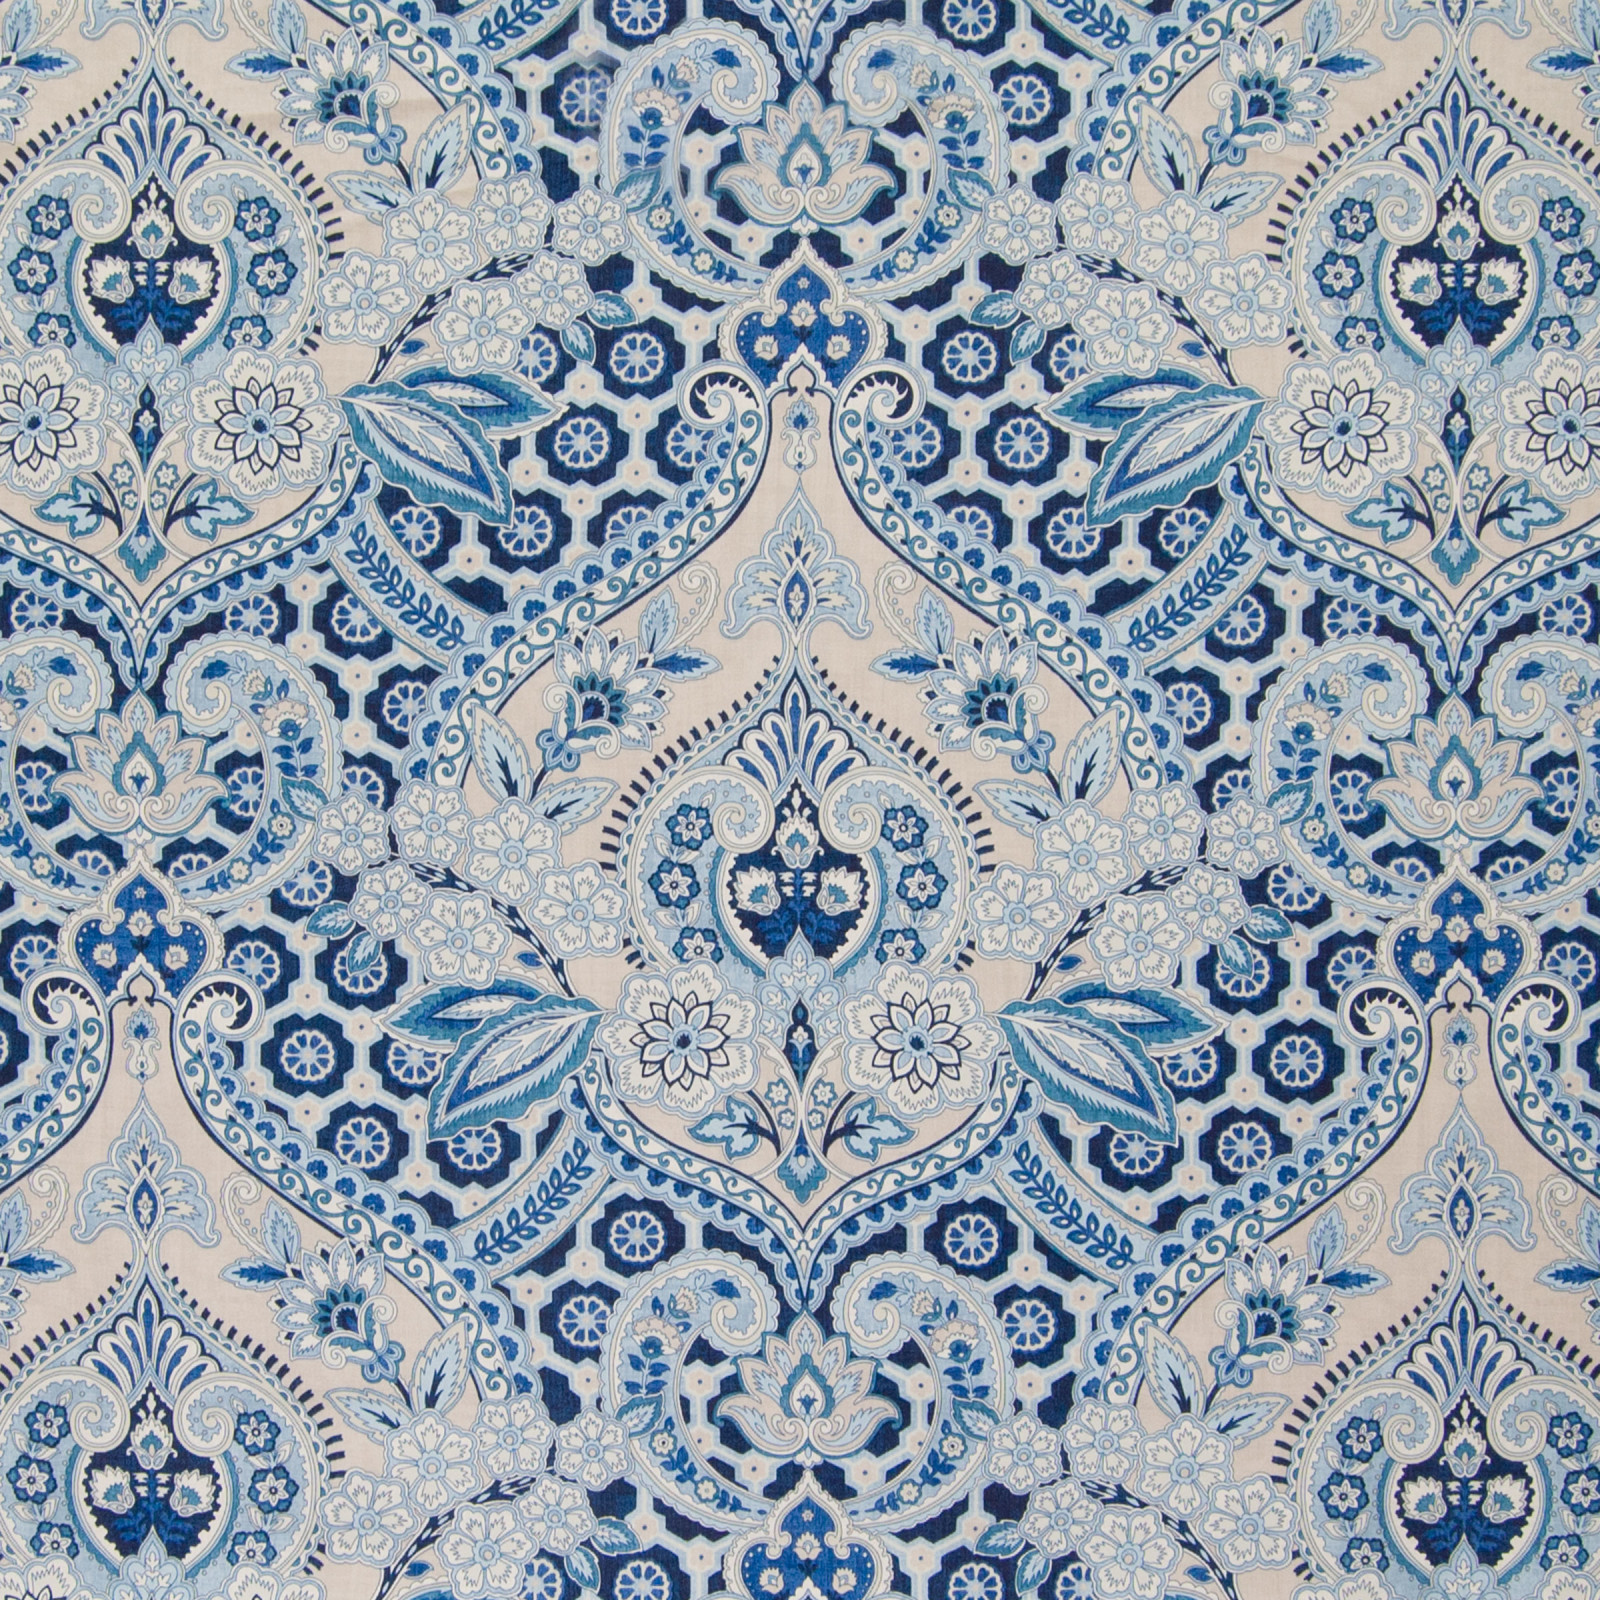 Ocean Blue Paisley Cotton Upholstery Fabric